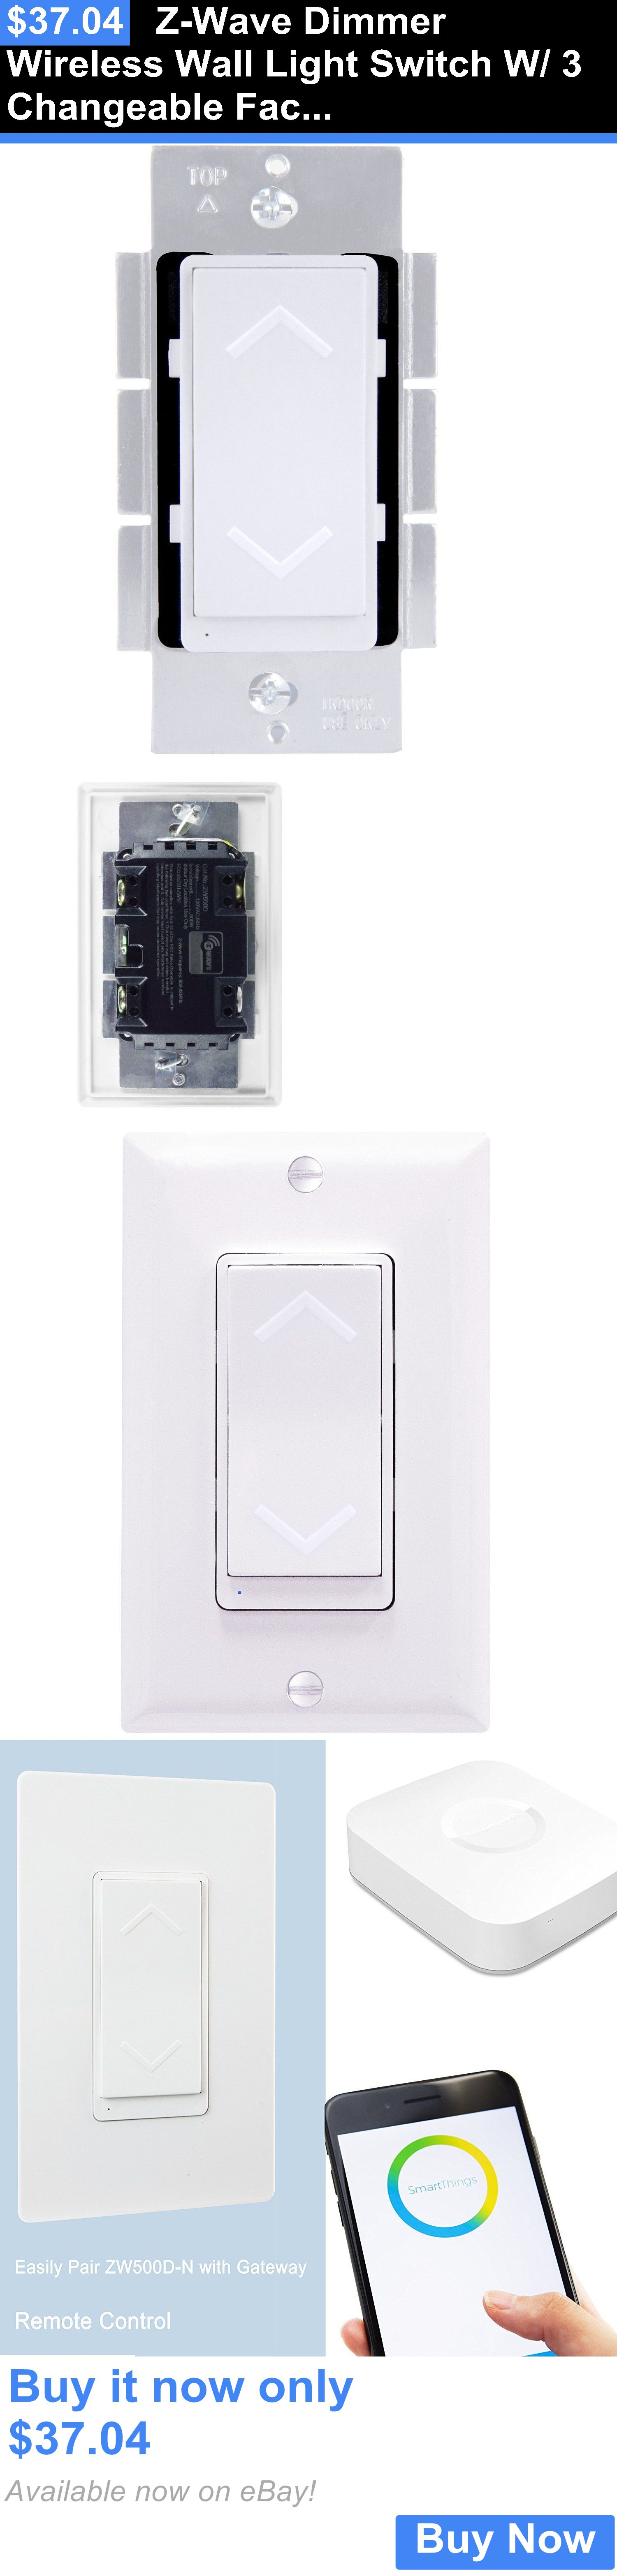 Home automation modules z wave dimmer wireless wall light switch home automation modules z wave dimmer wireless wall light switch w 3 changeable mozeypictures Choice Image